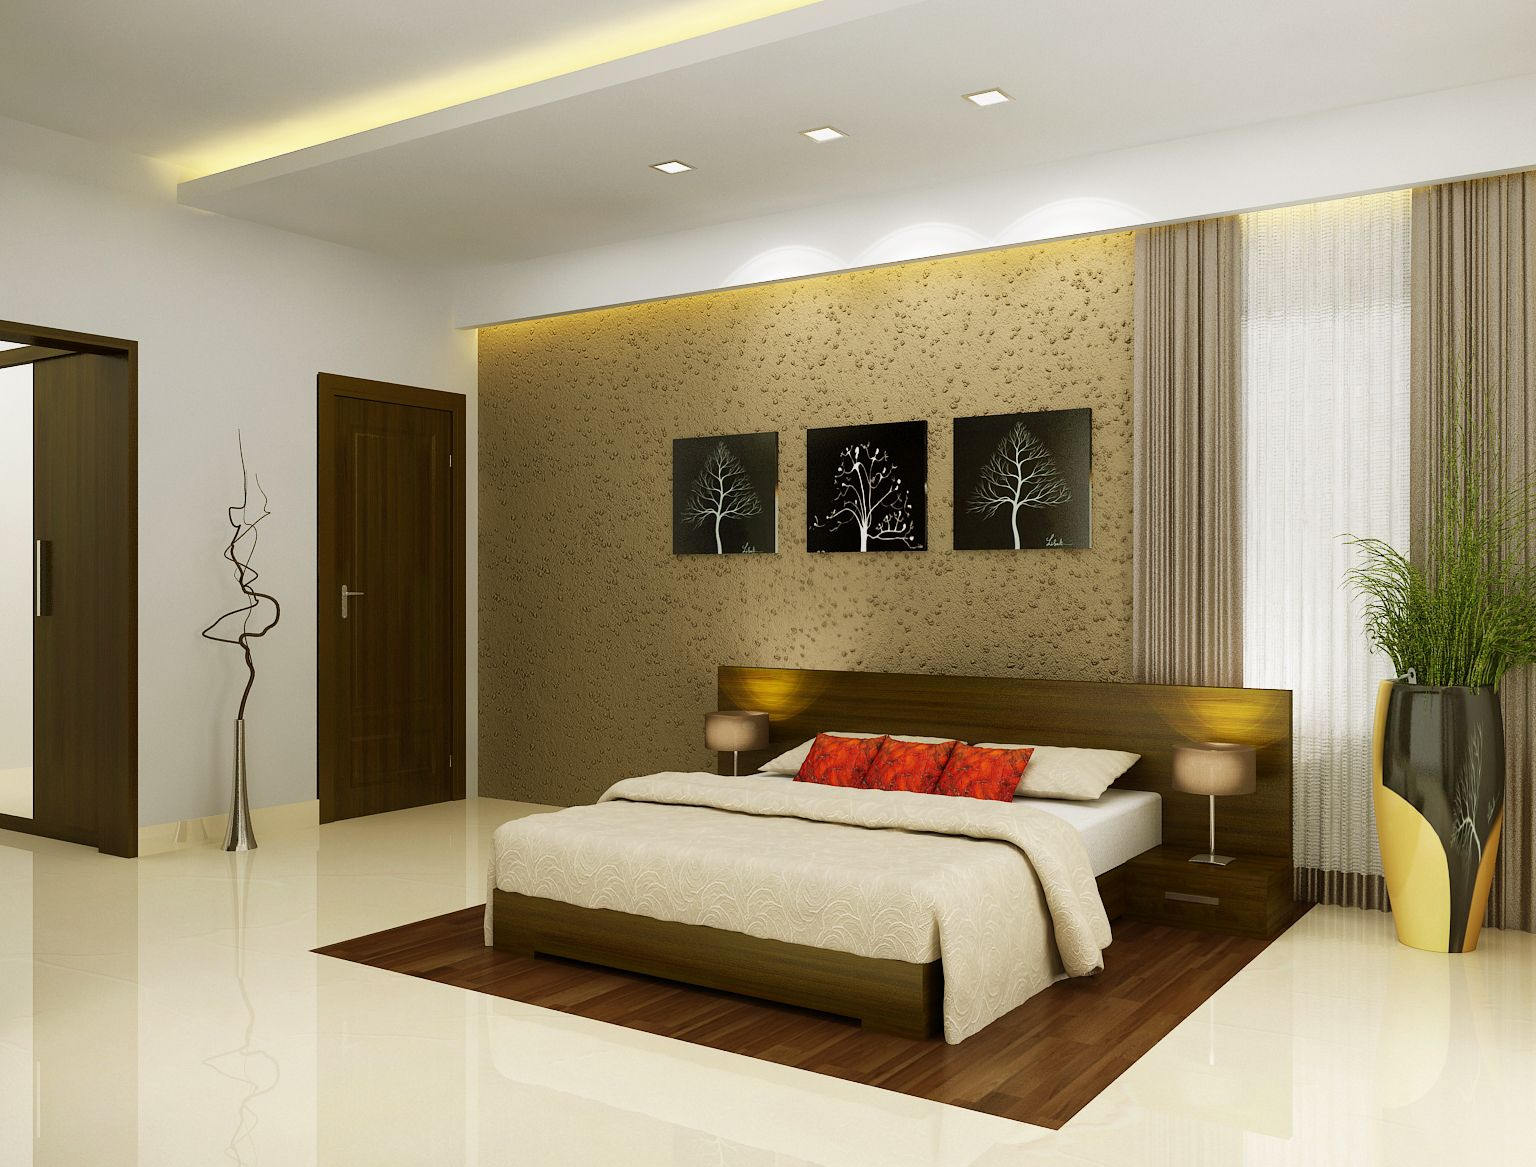 Bedroom design kerala style design ideas 2017 2018 for Bedroom interior images